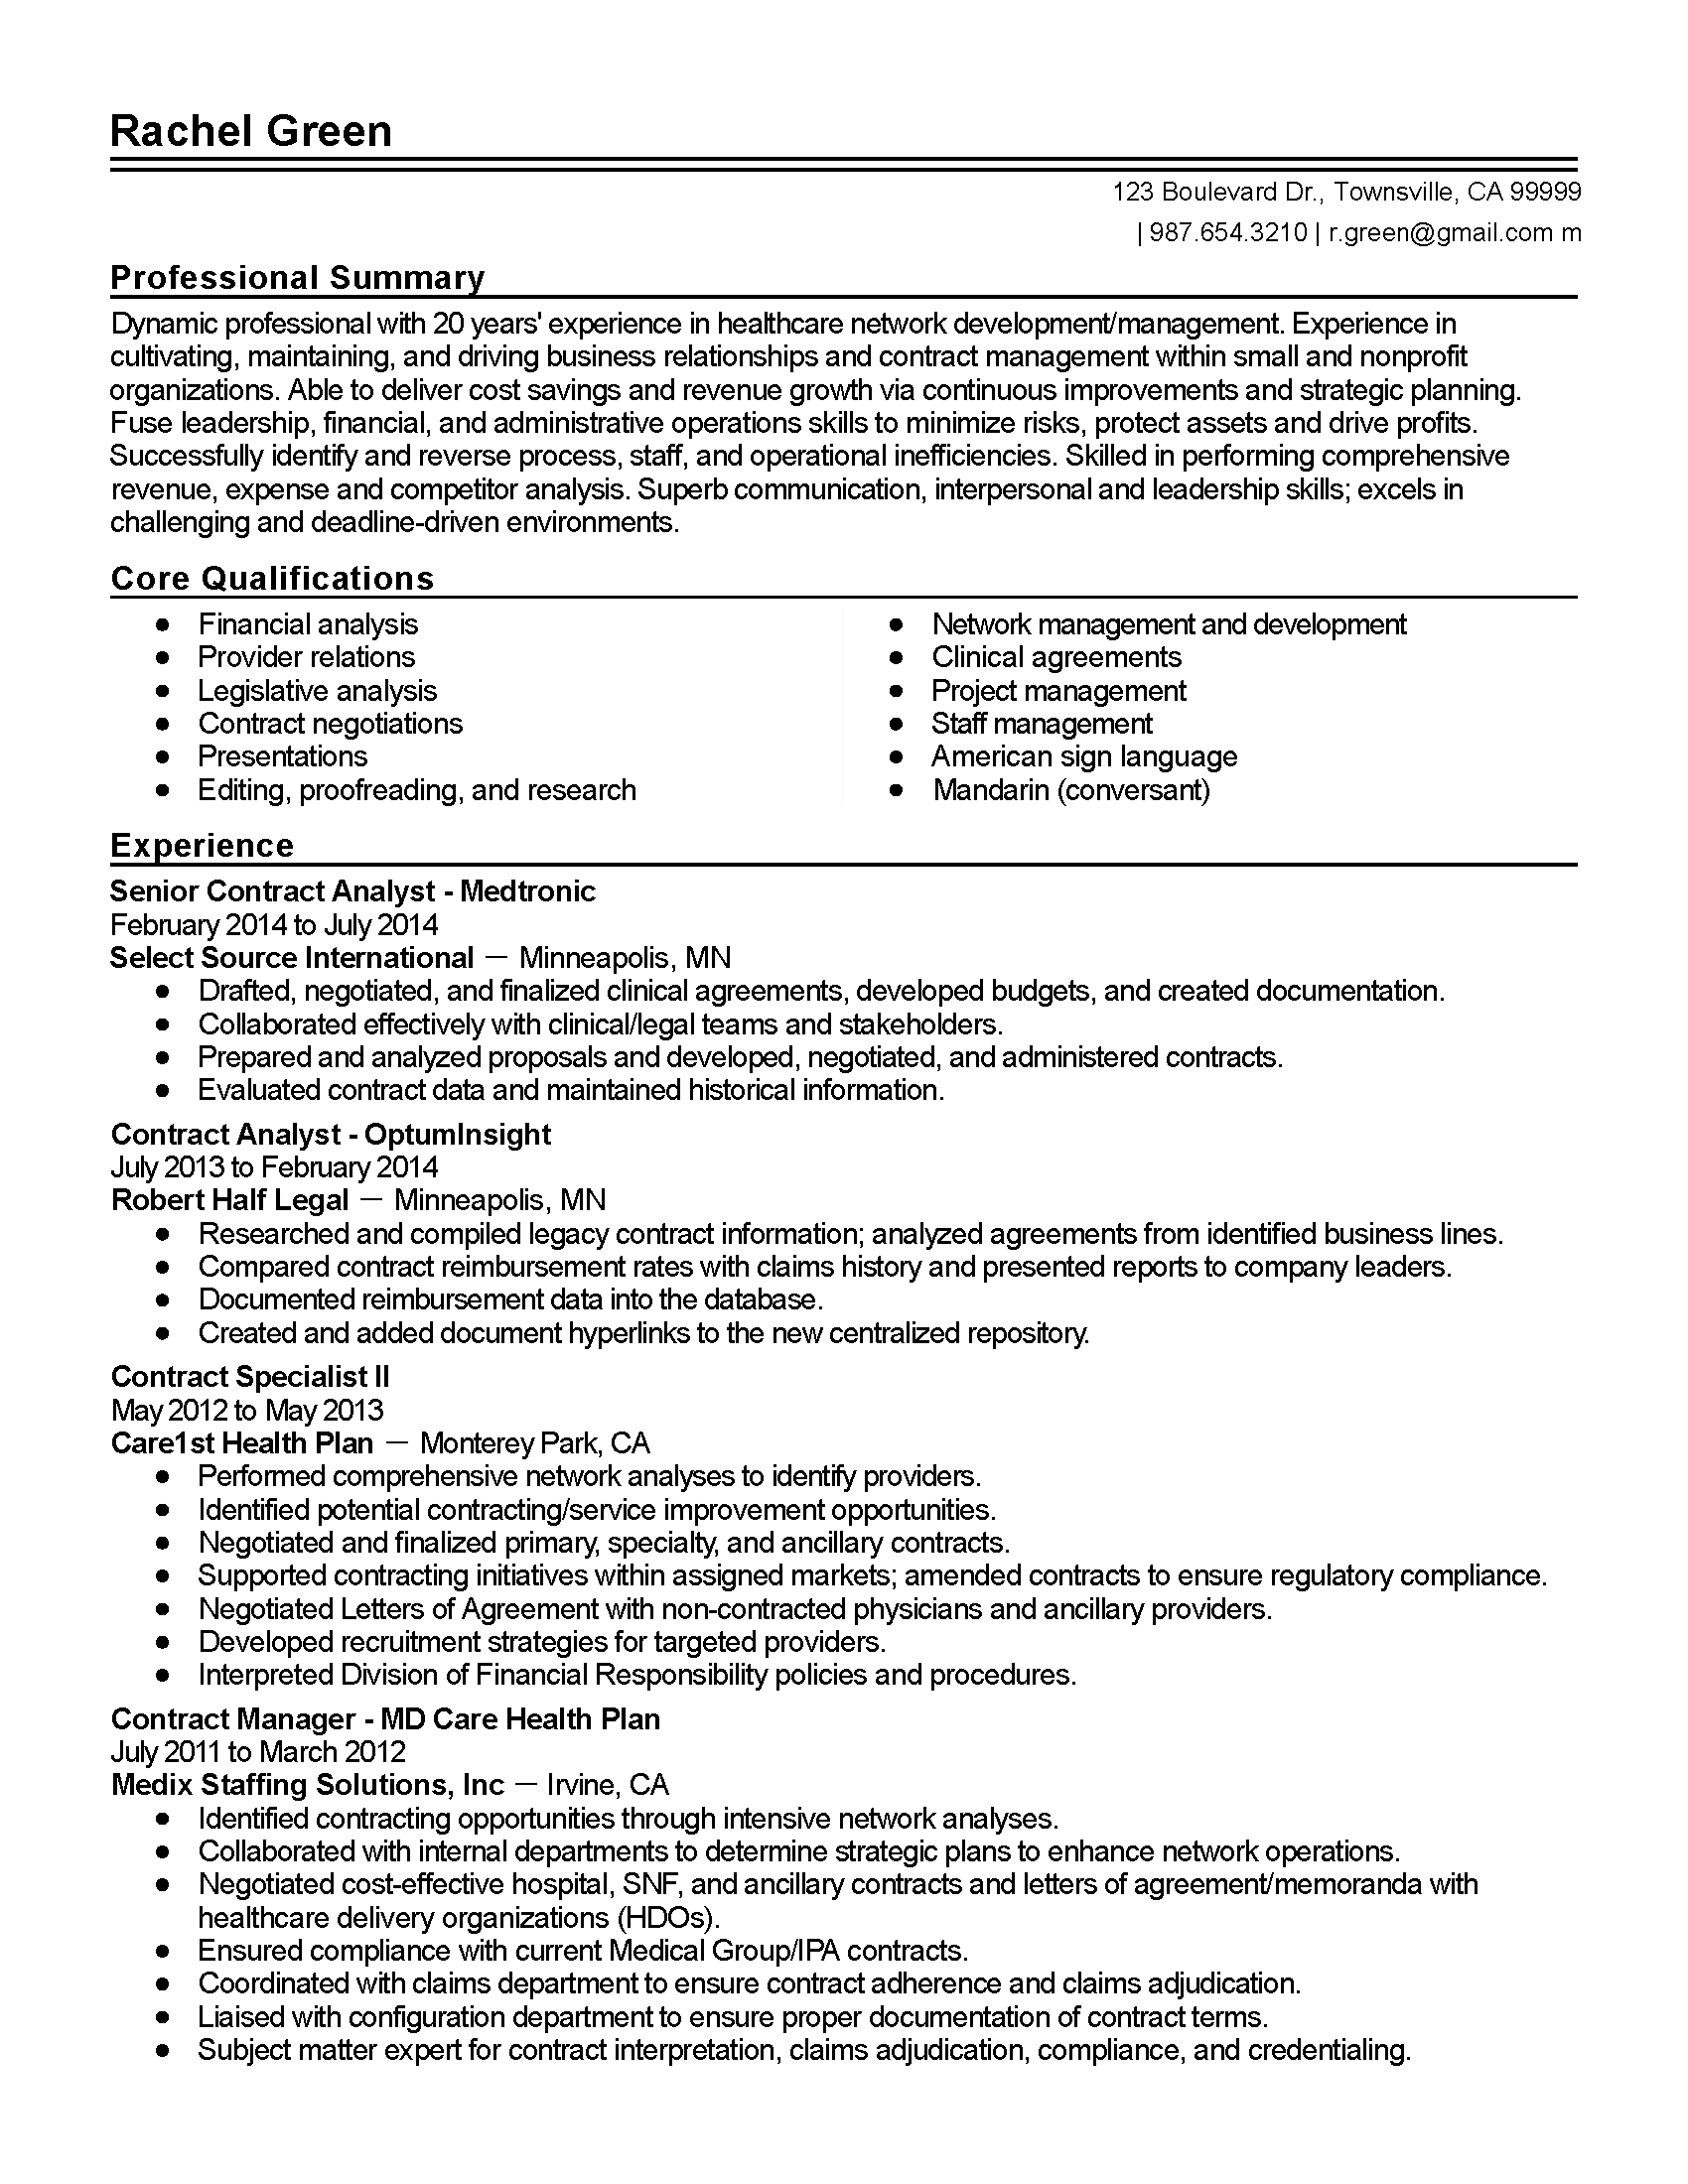 Resume Format For Purchase Manager Professional Senior Healthcare Contract Analyst Templates